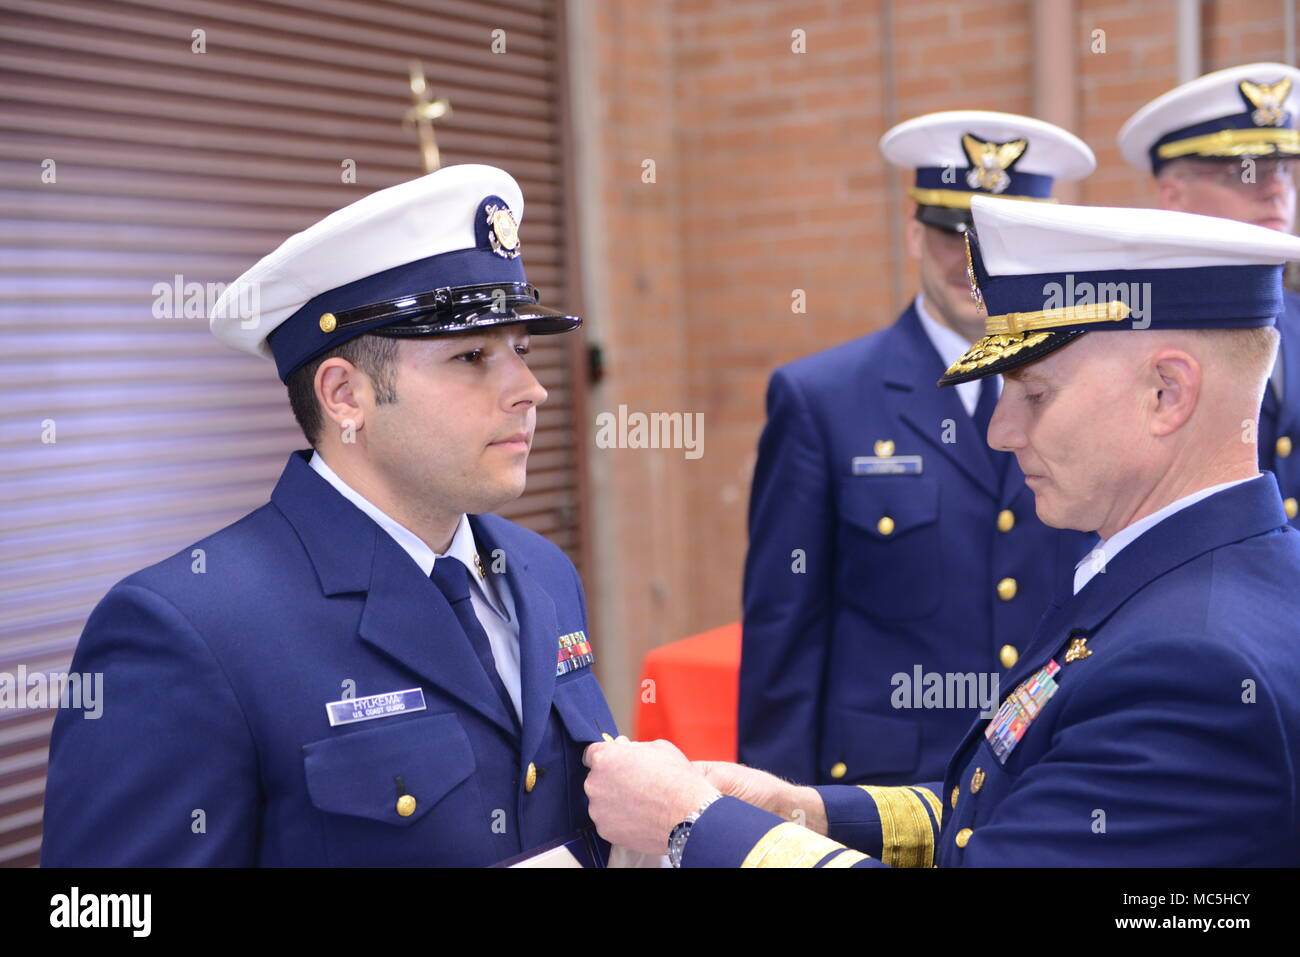 Rear Adm. David Throop, commander Coast Guard 13th District, clips the Coast Guard Medal onto Petty Officer 1st Class Jacob Hylkema, a boatswain's mate at Coast Guard Station Grays Harbor, during a ceremony held at the station's base in Westport, Wash., April 6, 2018.    The Coast Guard Medal is the 3rd highest award that a Coast Guardsman can be awarded during peacetime.    U.S. Coast Guard photo by Petty Officer 1st Class Levi Read. - Stock Image